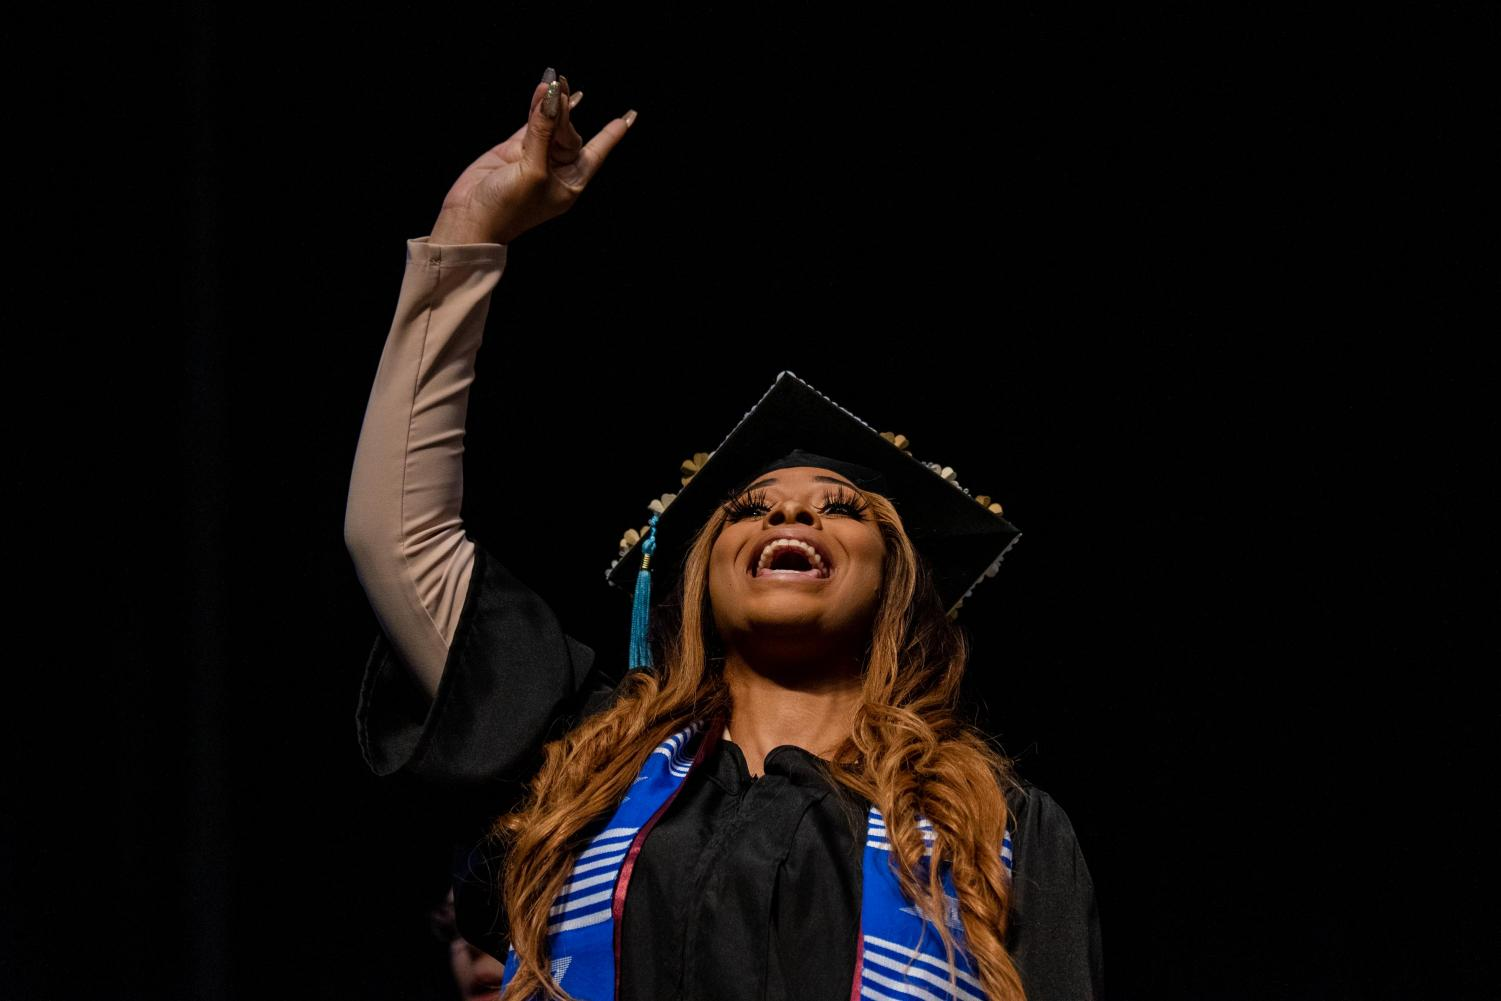 Val+Jackson+reacts+after+receiving+her+diploma+on+Saturday%2C+May+11%2C+2019+during+the+2019+commencement+inside+the+SIU+Arena.+